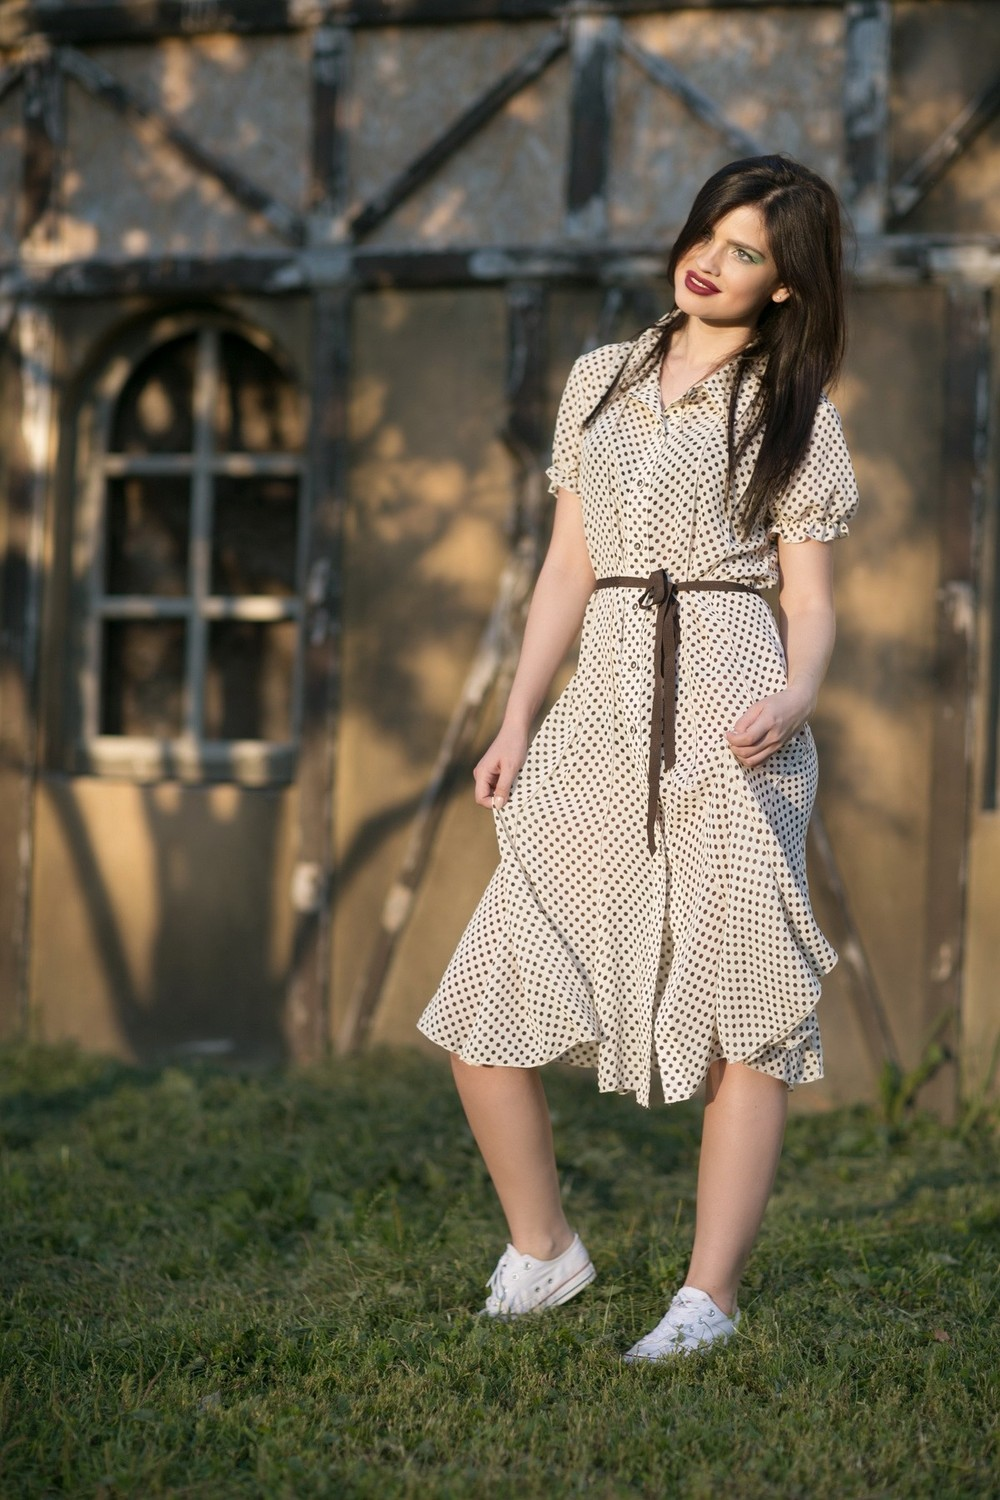 Fashion story/Lookbooks/Сampaigns - Cot's Store